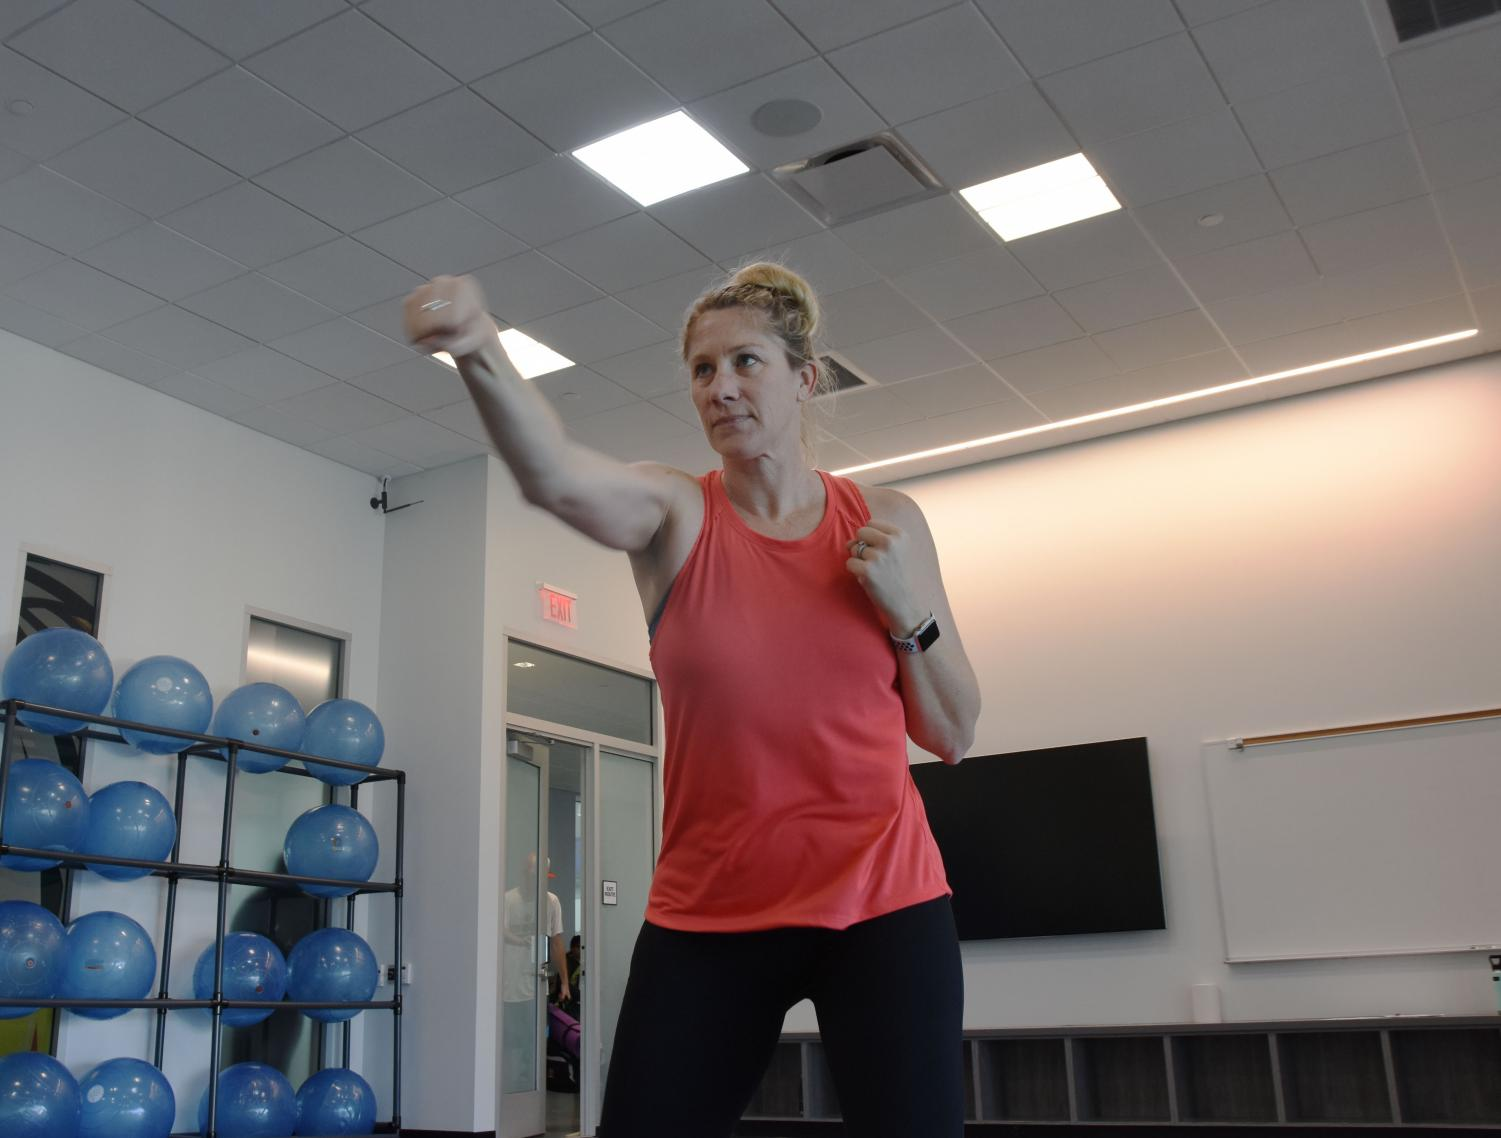 Sarah Stretch, the Kickboxing instructor at Los Medanos College, teaches and leads students in some kick boxing activities, Feburary 6, 2020 at Los Medanos College in Pittsburg Calif.